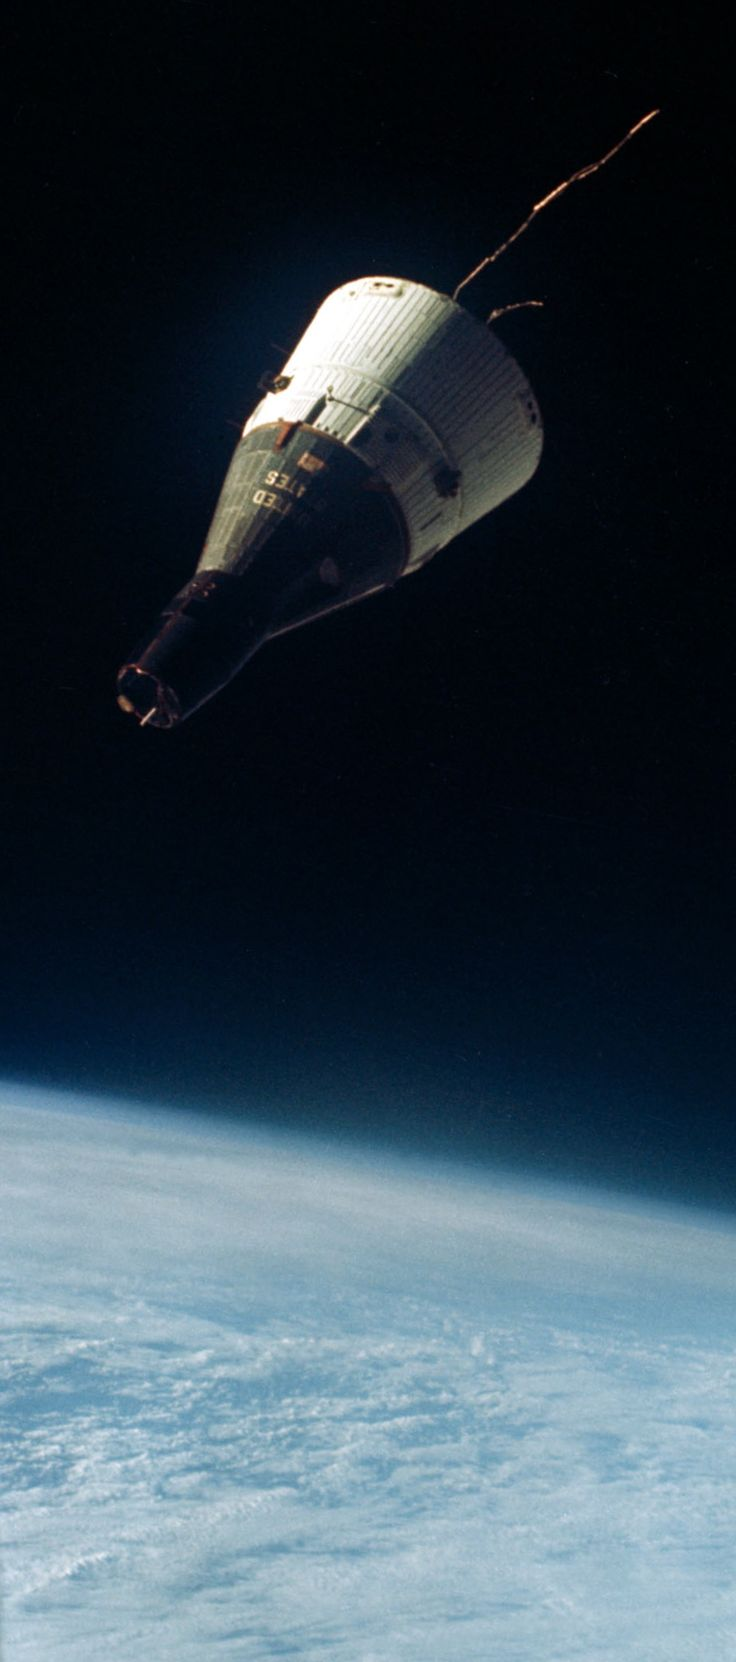 December 15, 1965 — The Gemini 7 spacecraft seen from the hatch window of the Gemini 6 spacecraft during rendezvous maneuvers about 160 miles above the Earth. (NASA)